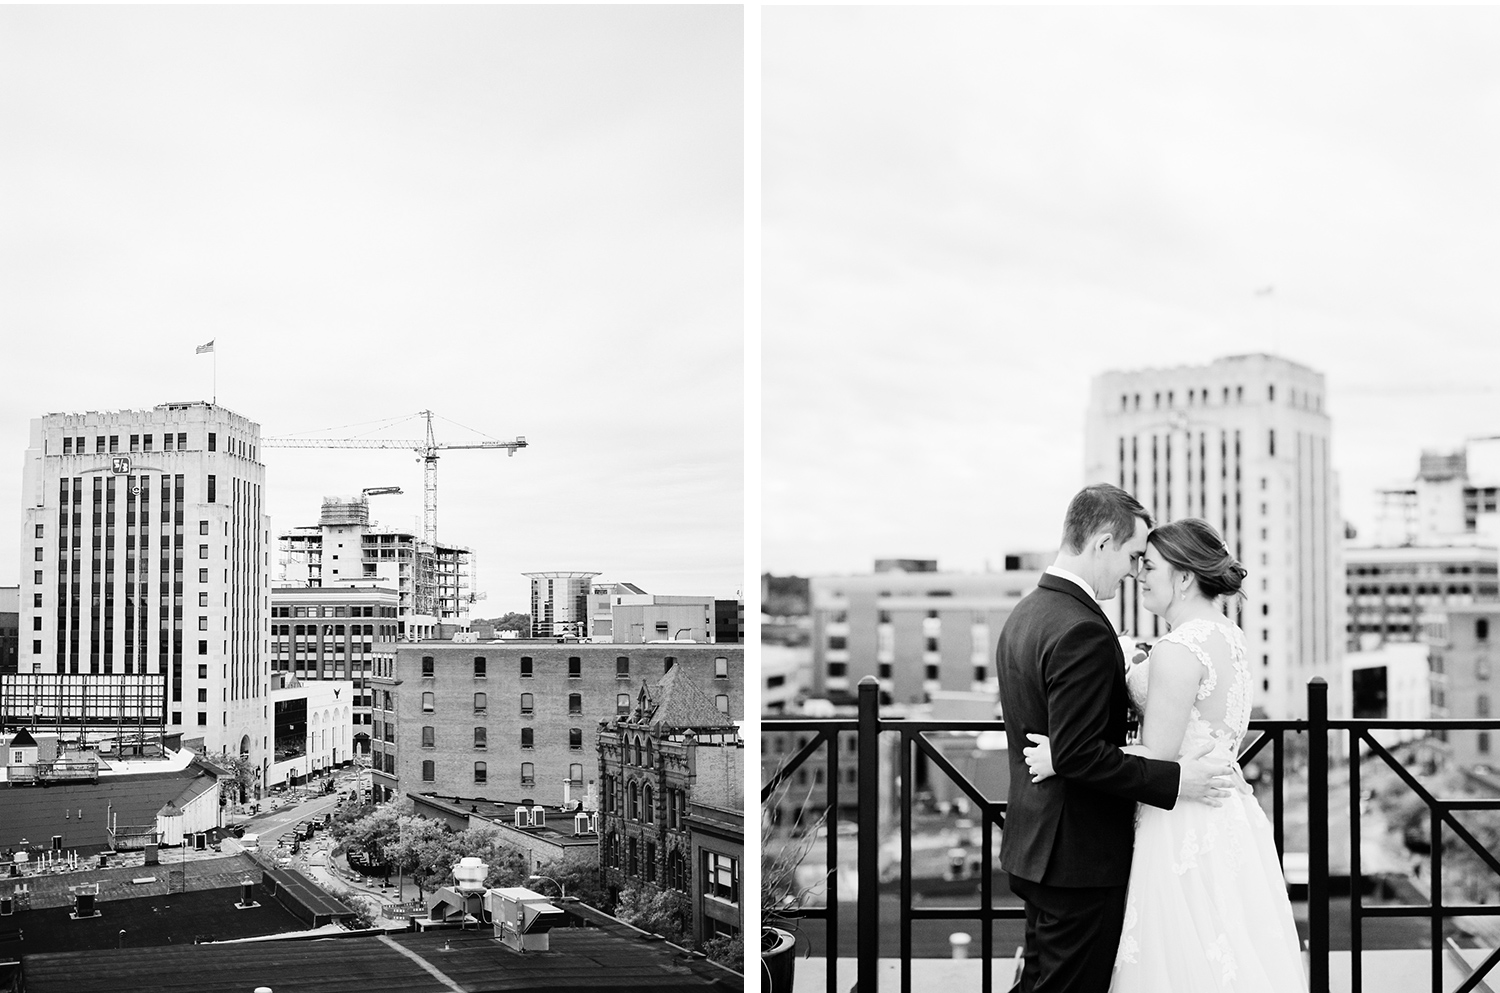 A couple embraces against the skyline of downtown Kalamazoo after their rooftop wedding